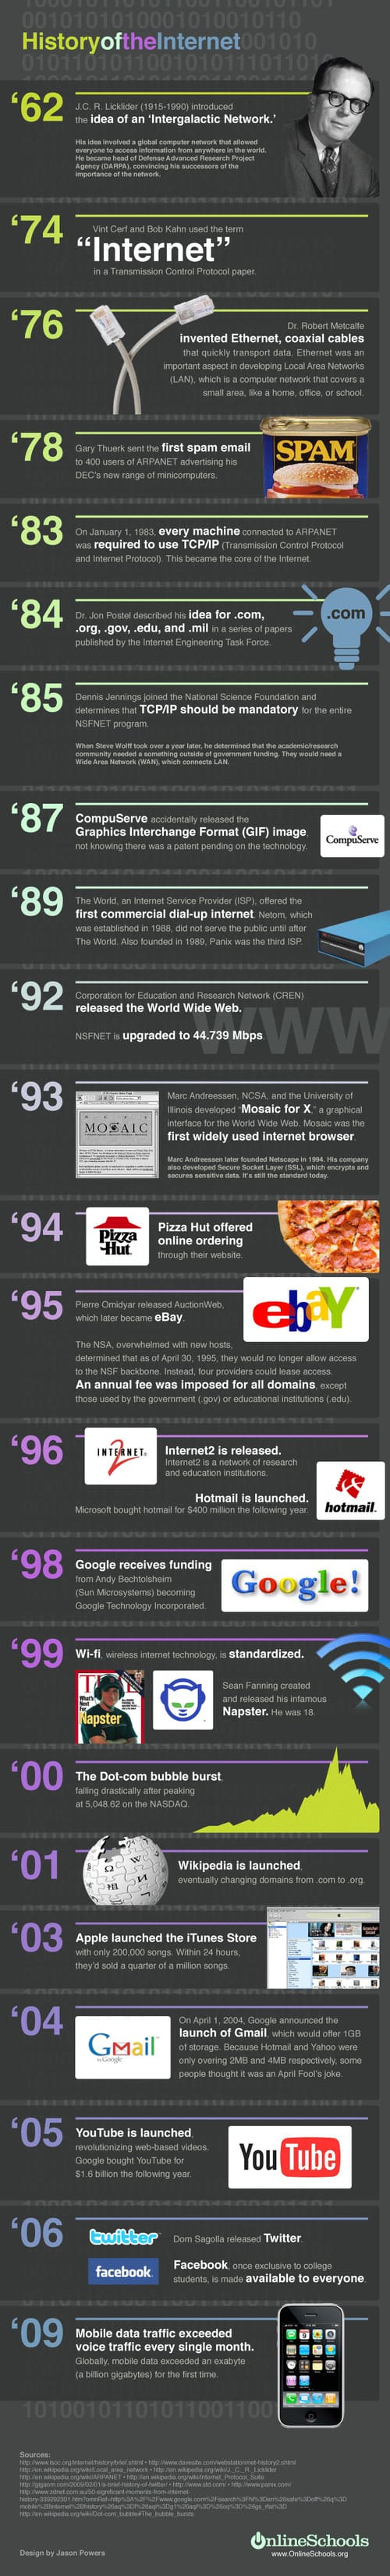 History of Internet